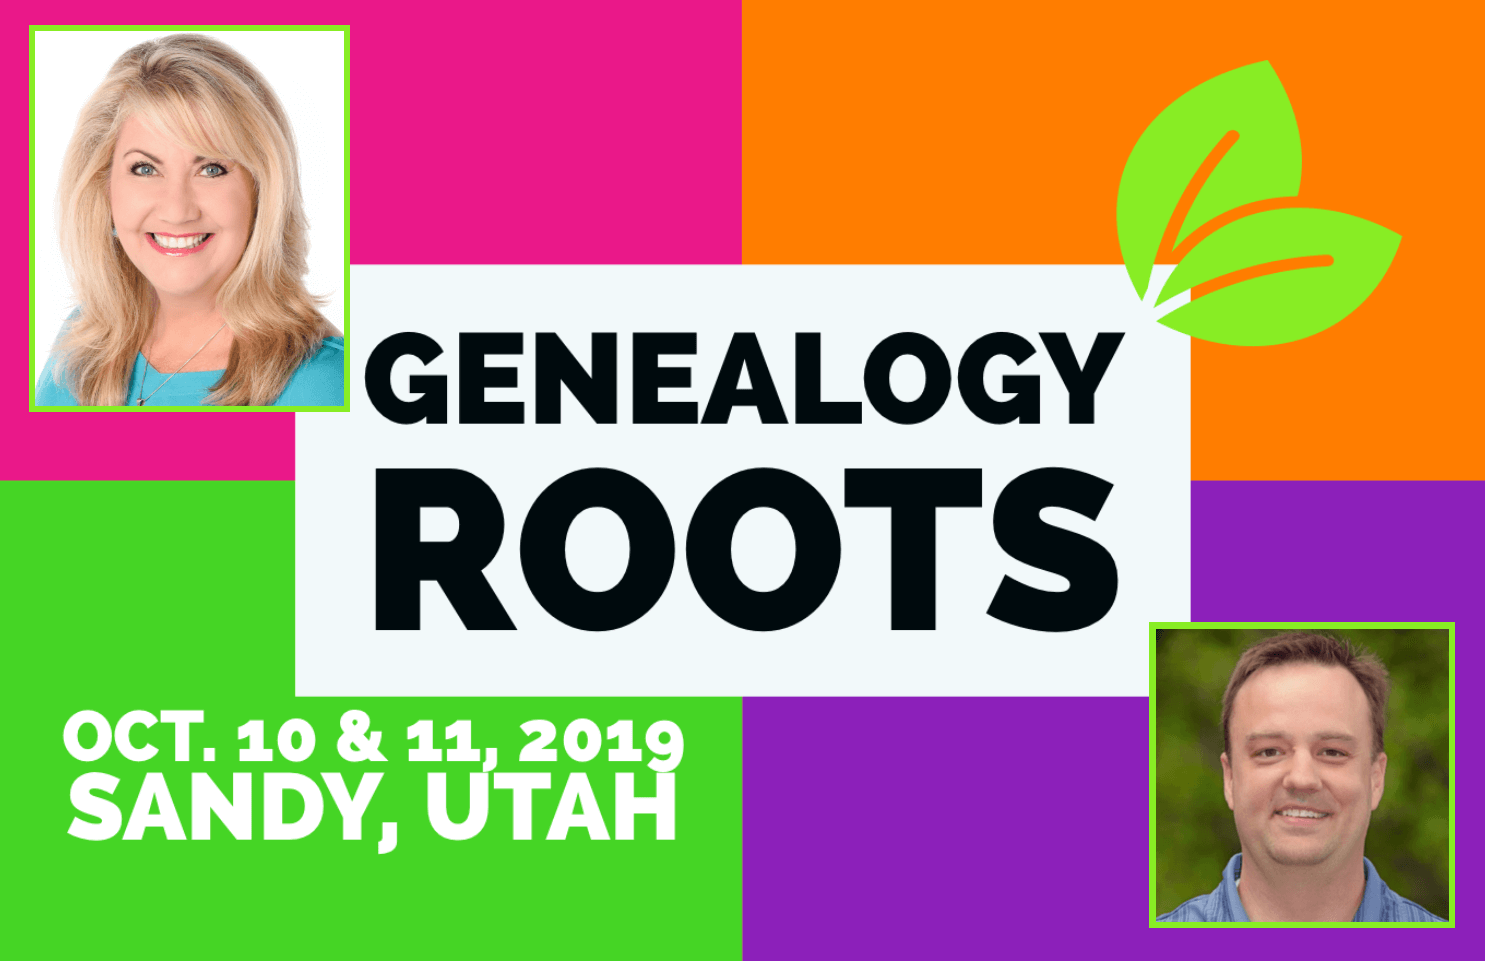 Genealogy Roots 2019